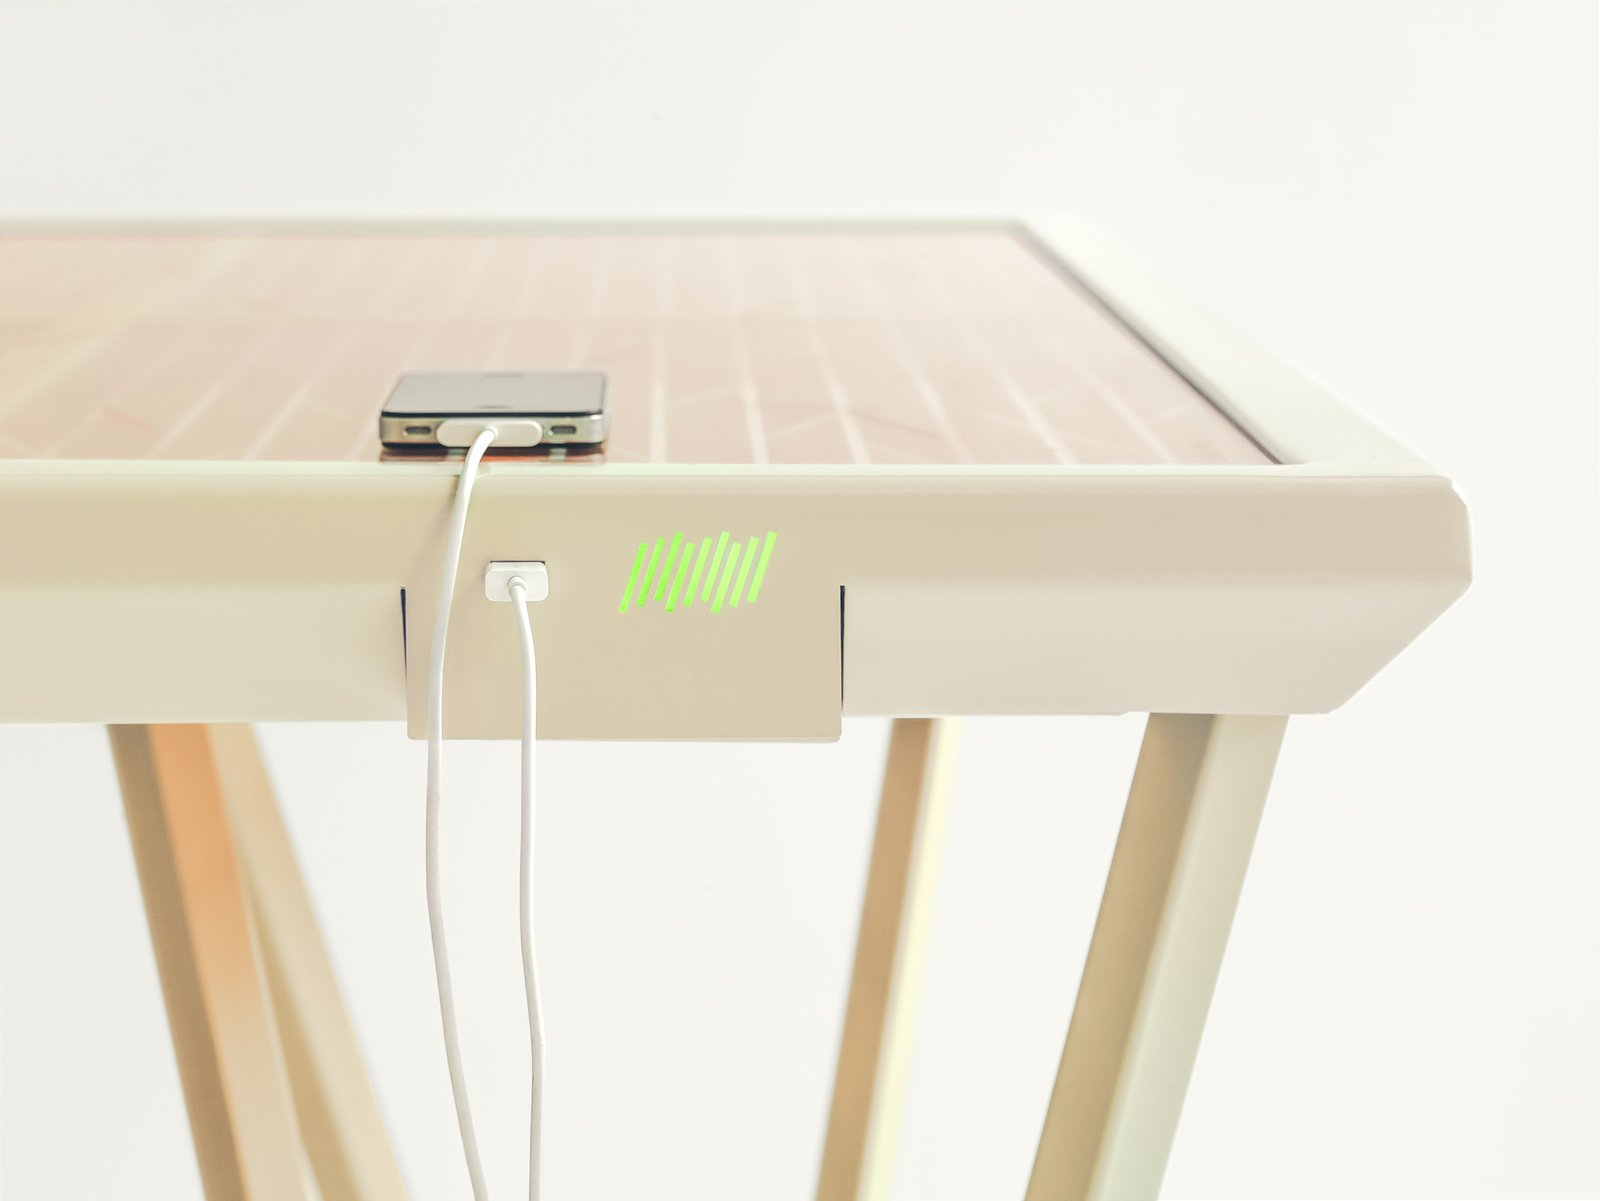 A Table That Charges Your iPhone